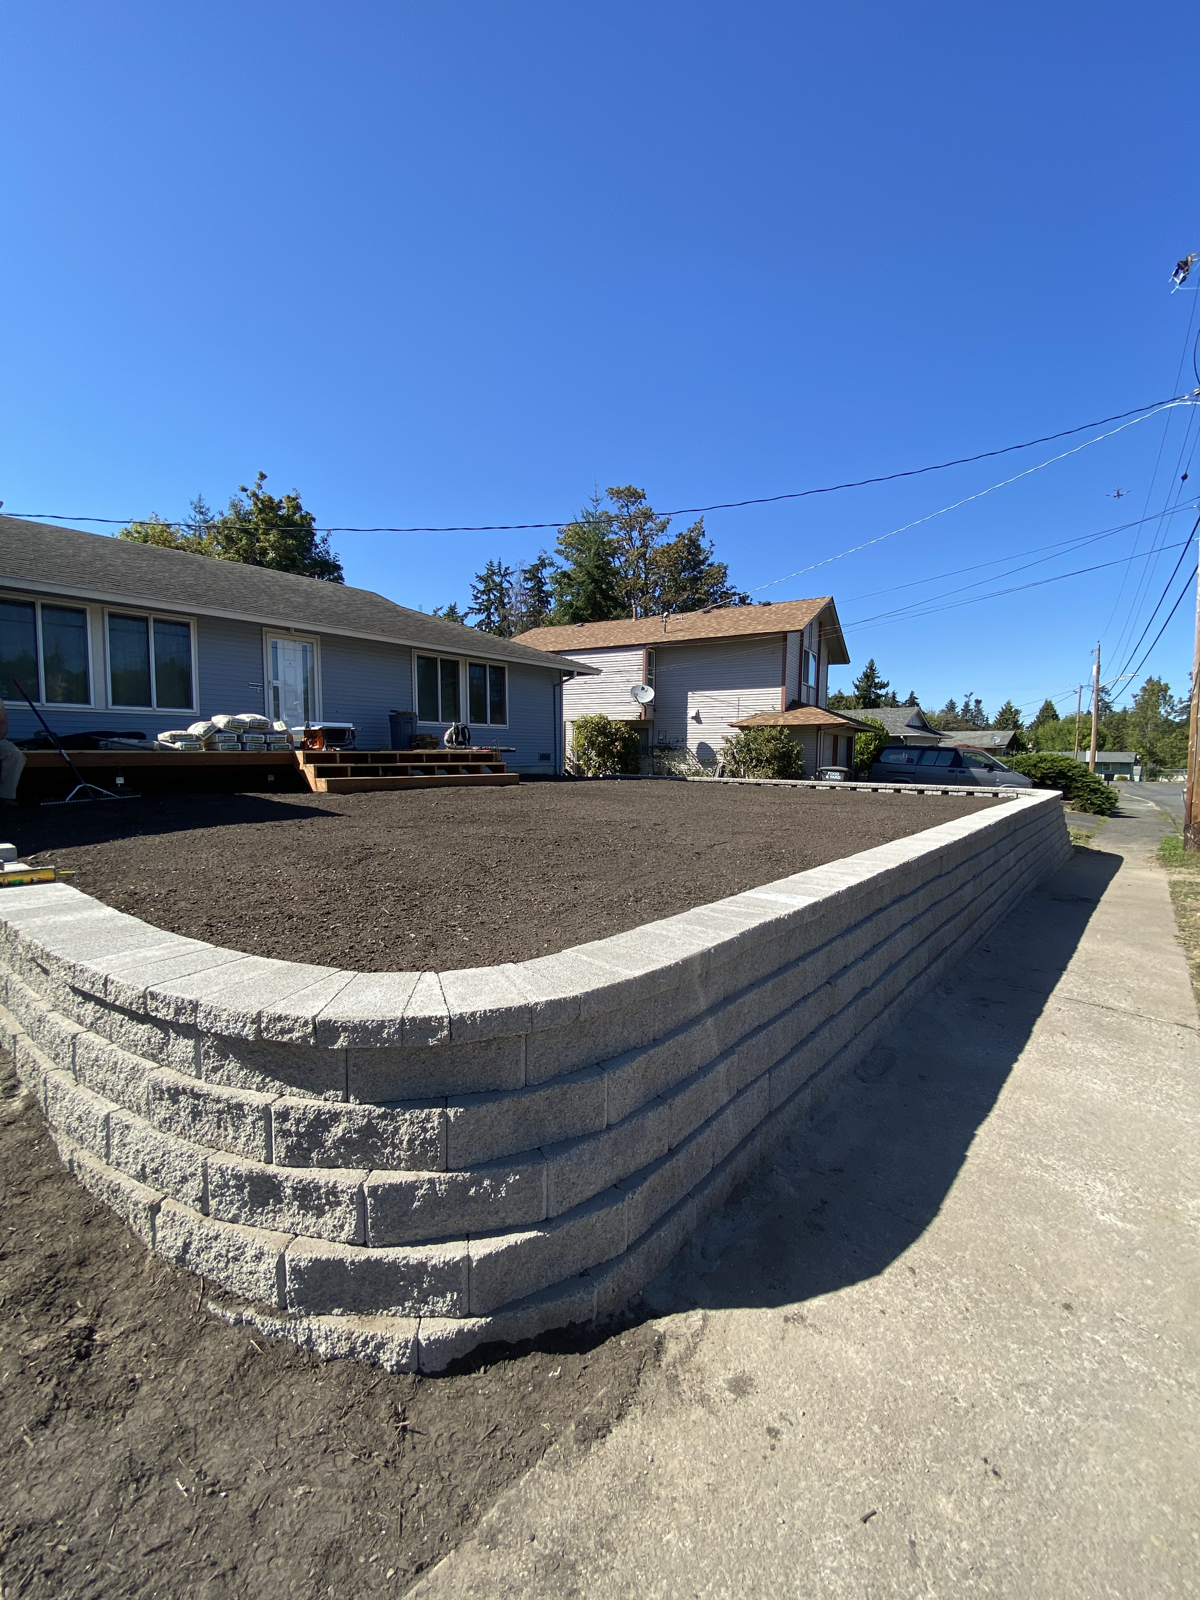 After rebuilding a yard inside of a newly built retaining yard.